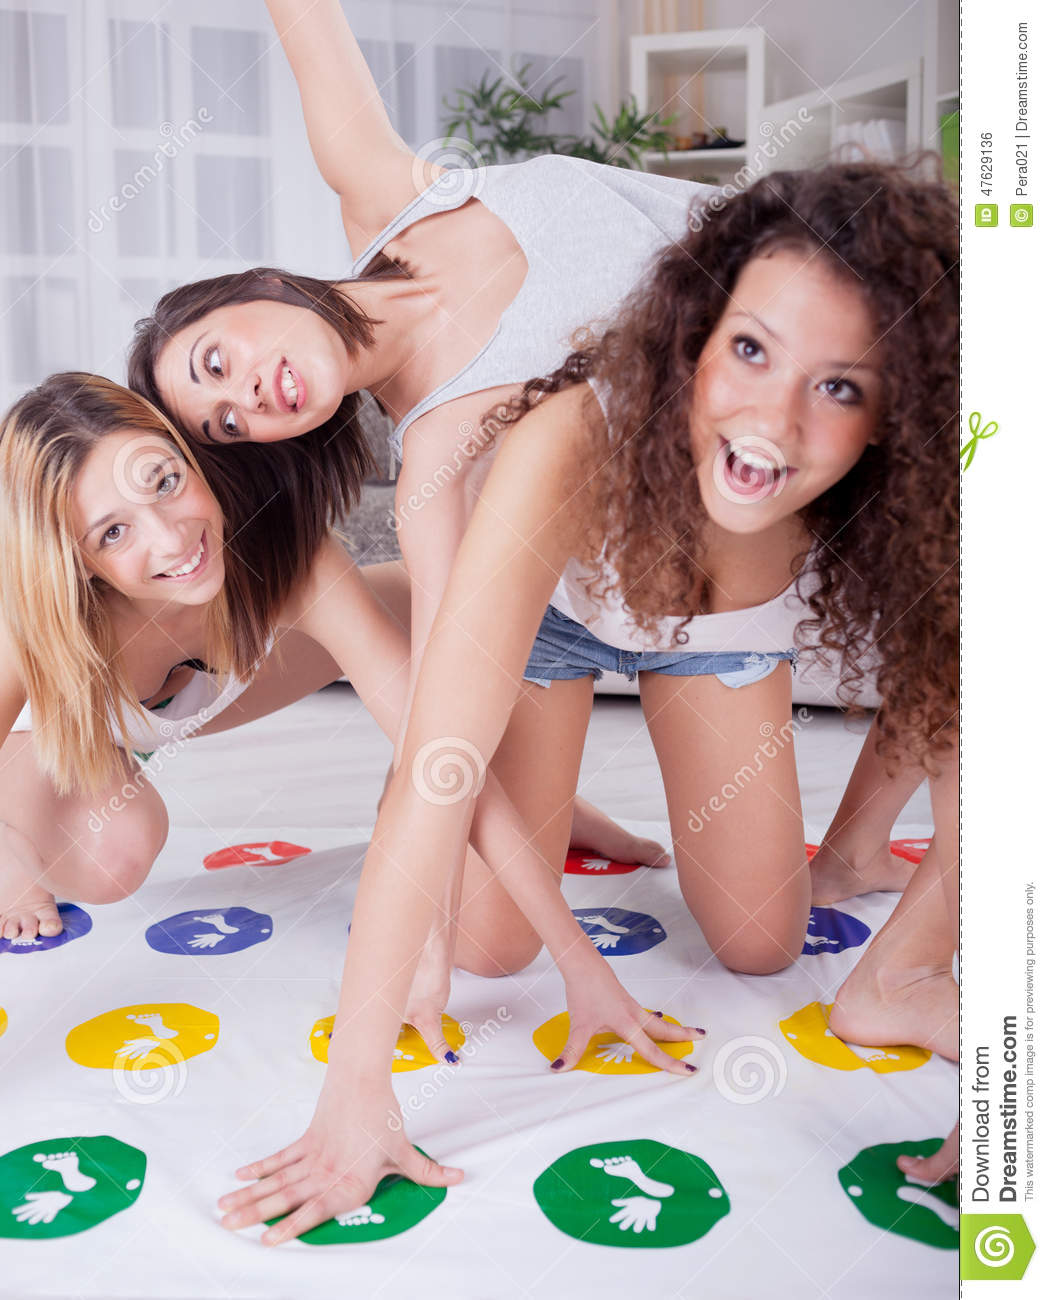 2 beautiful girls play a game of strip darts 9